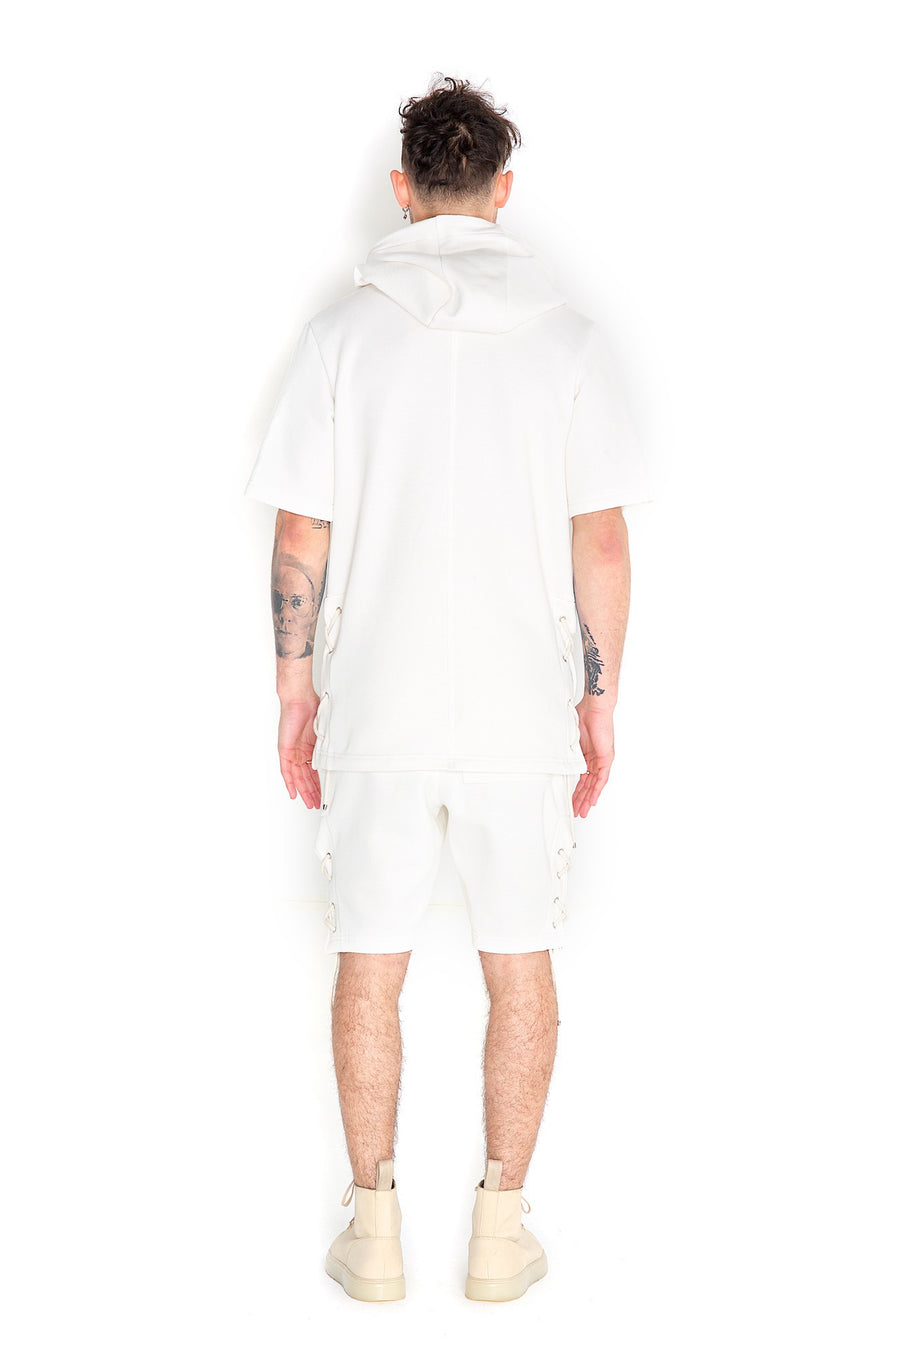 Raido Hoody White